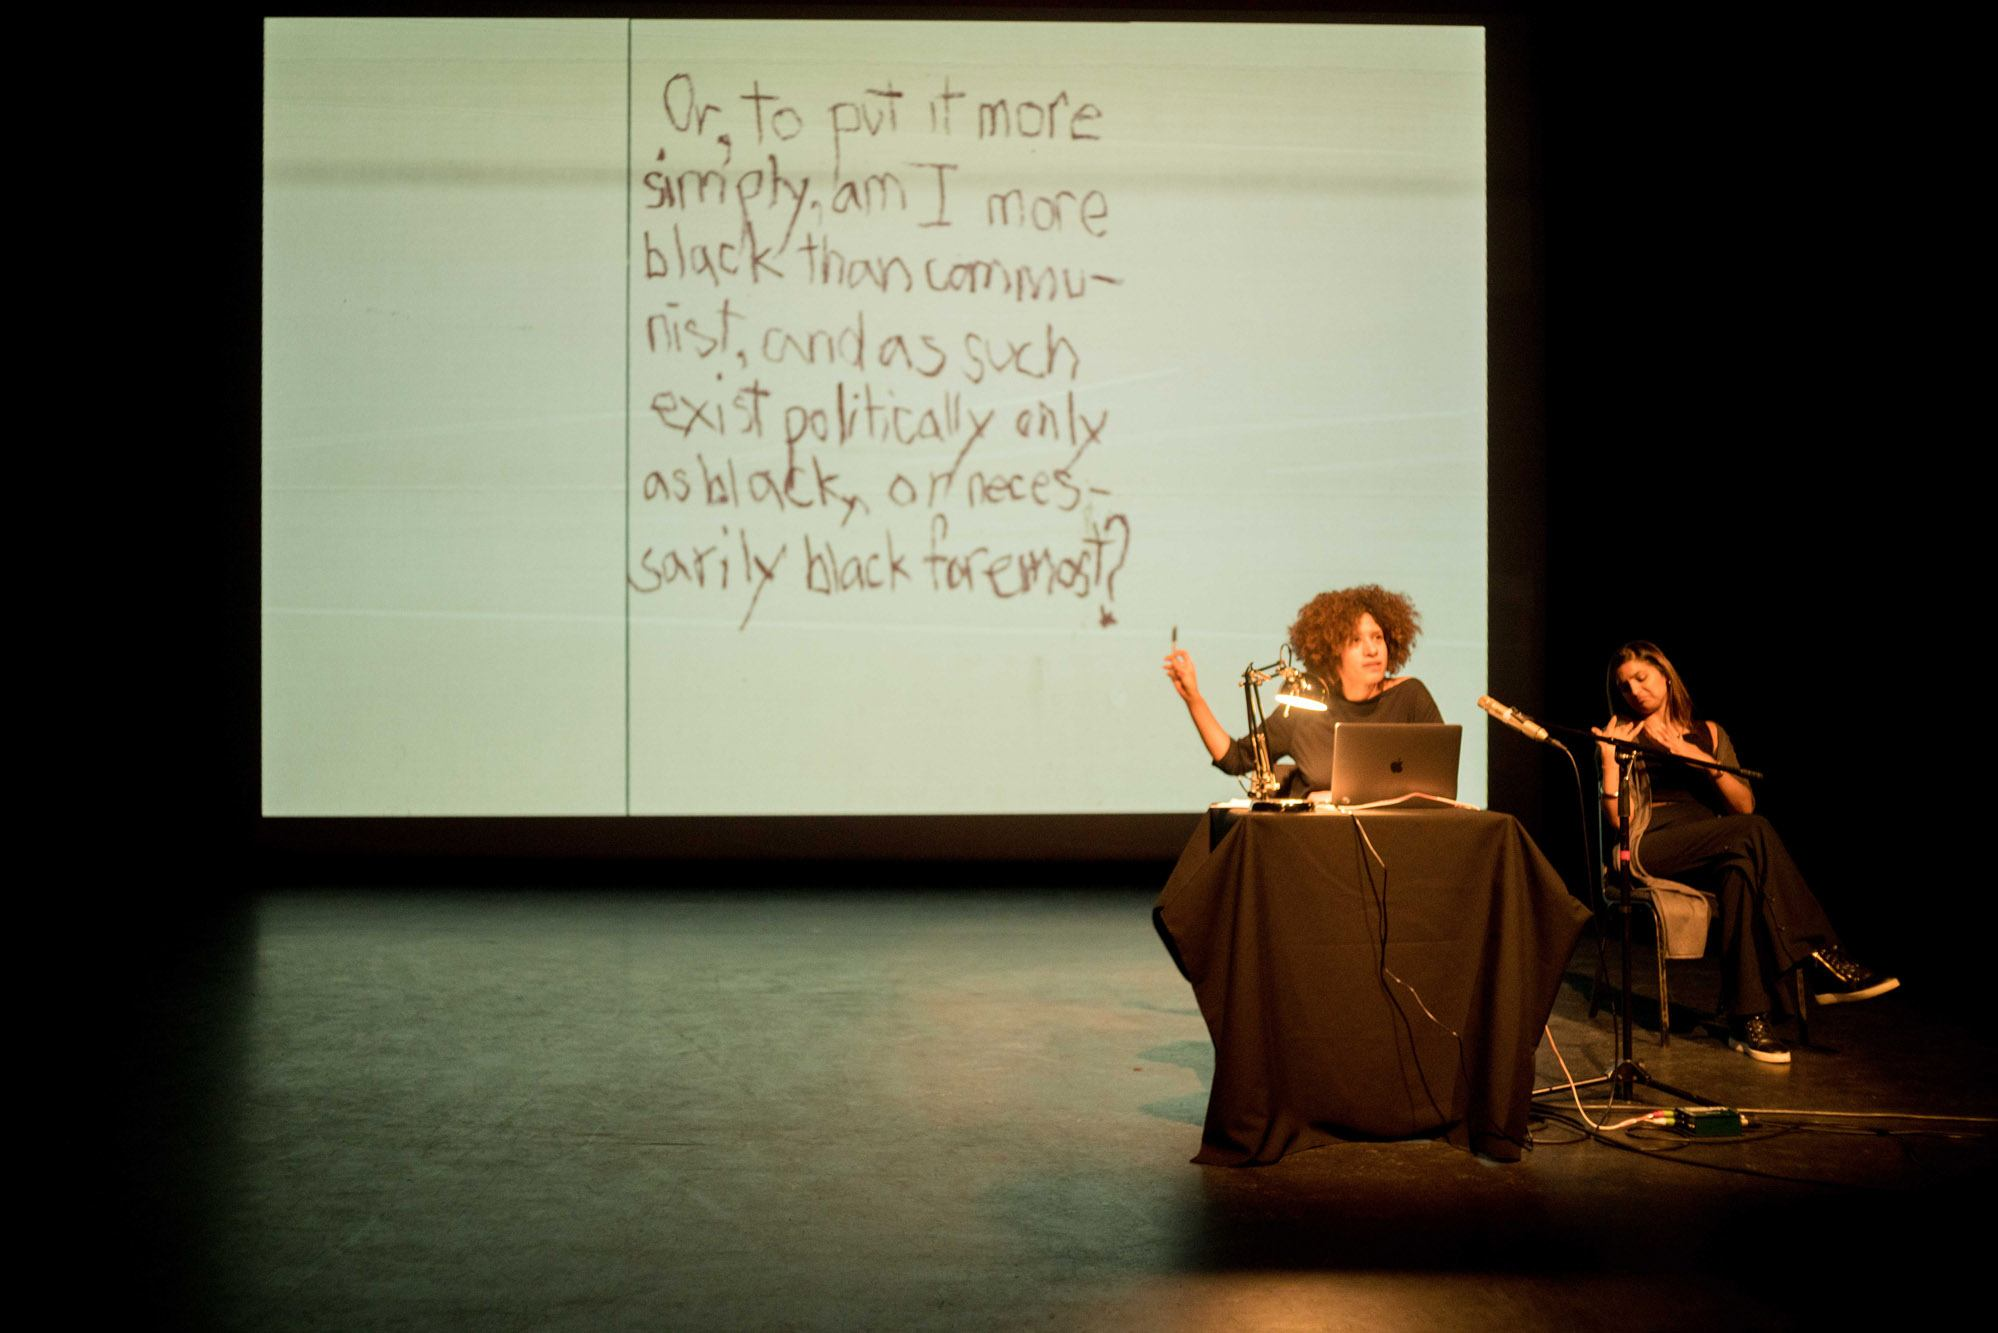 Performance: Season Butler (artist) sits at a table with a laptop and points to the projection screen behind her.